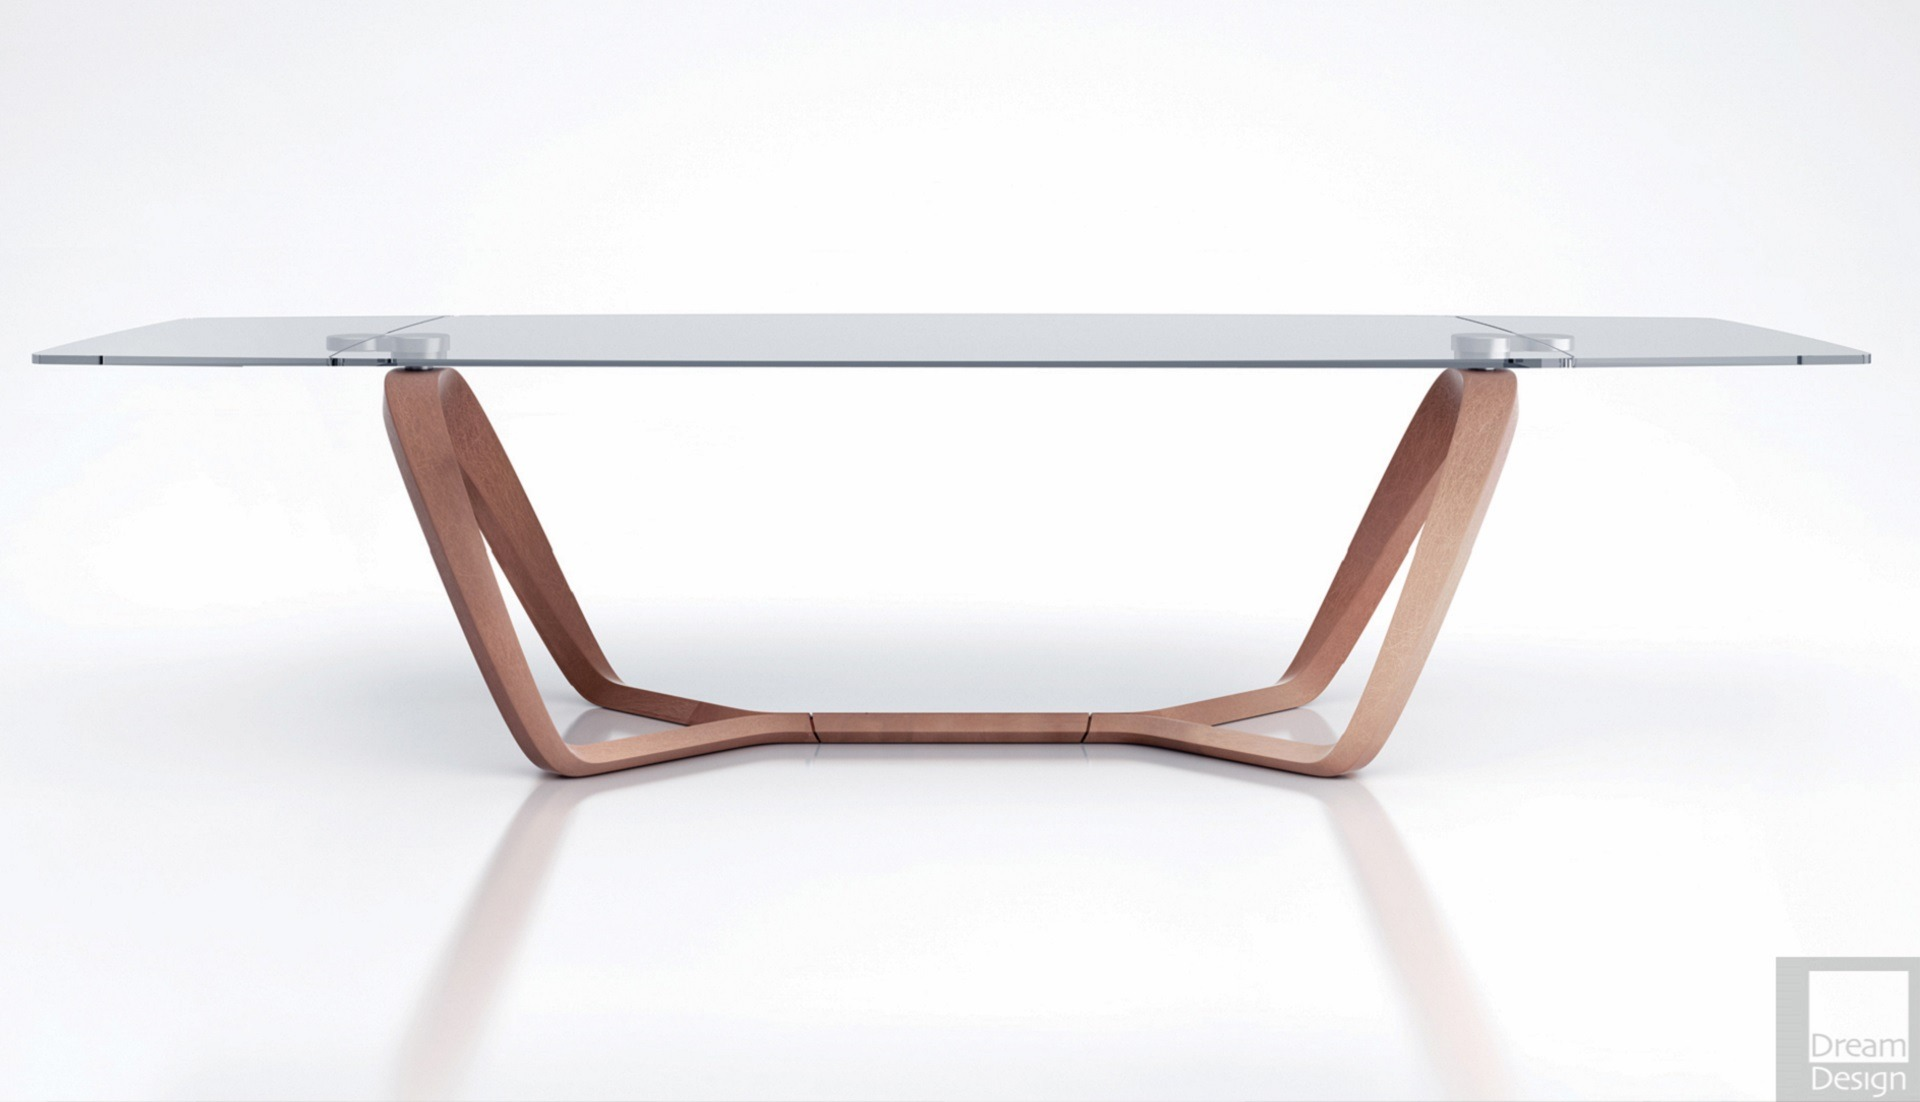 Reflex angelo segno 72 table dream design interiors ltd for Reflex tavoli